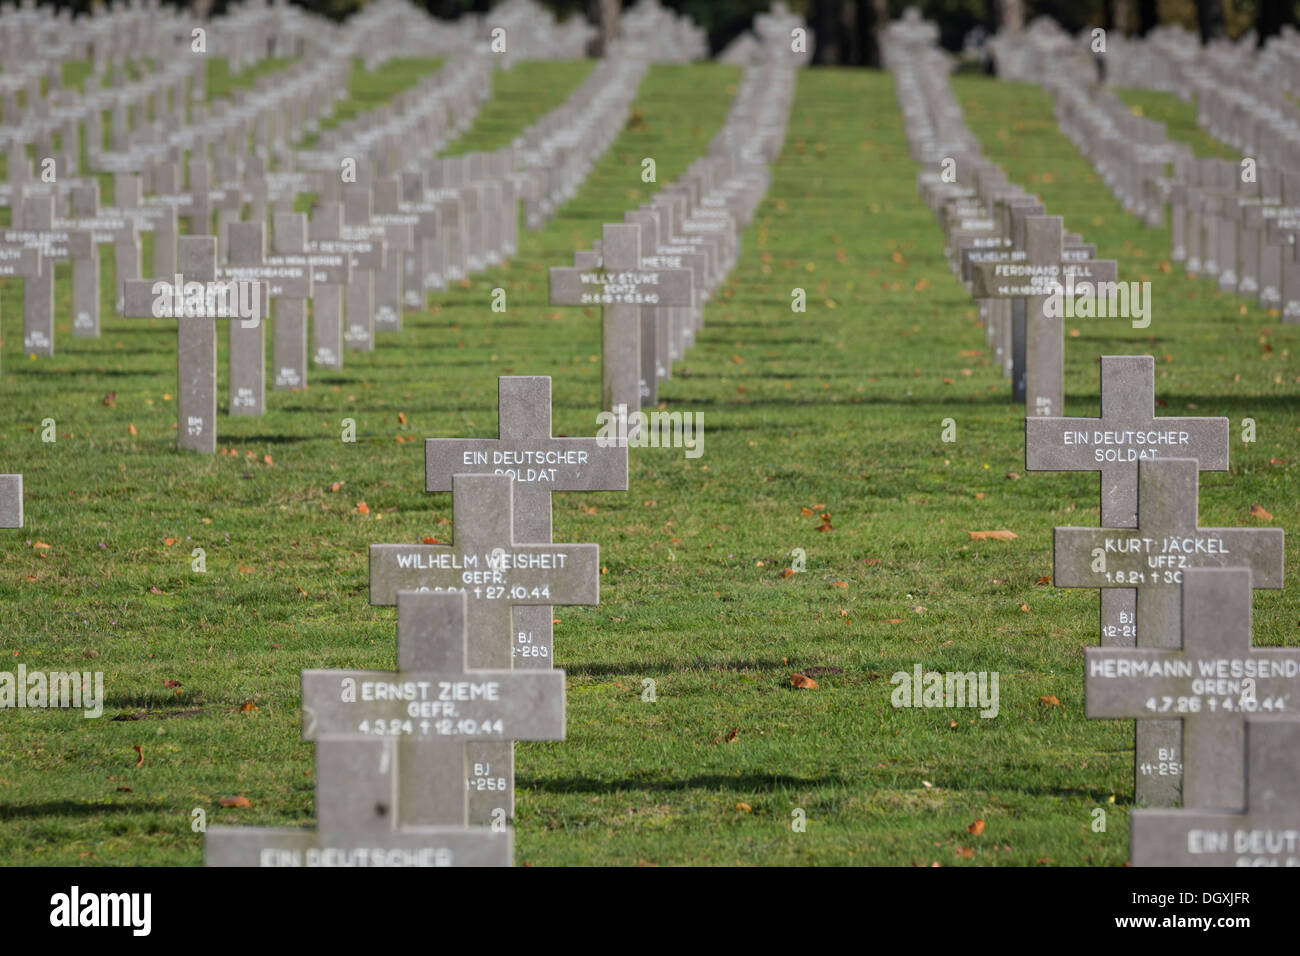 The German war cemetery at Ysselsteyn in the Netherlands - Stock Image